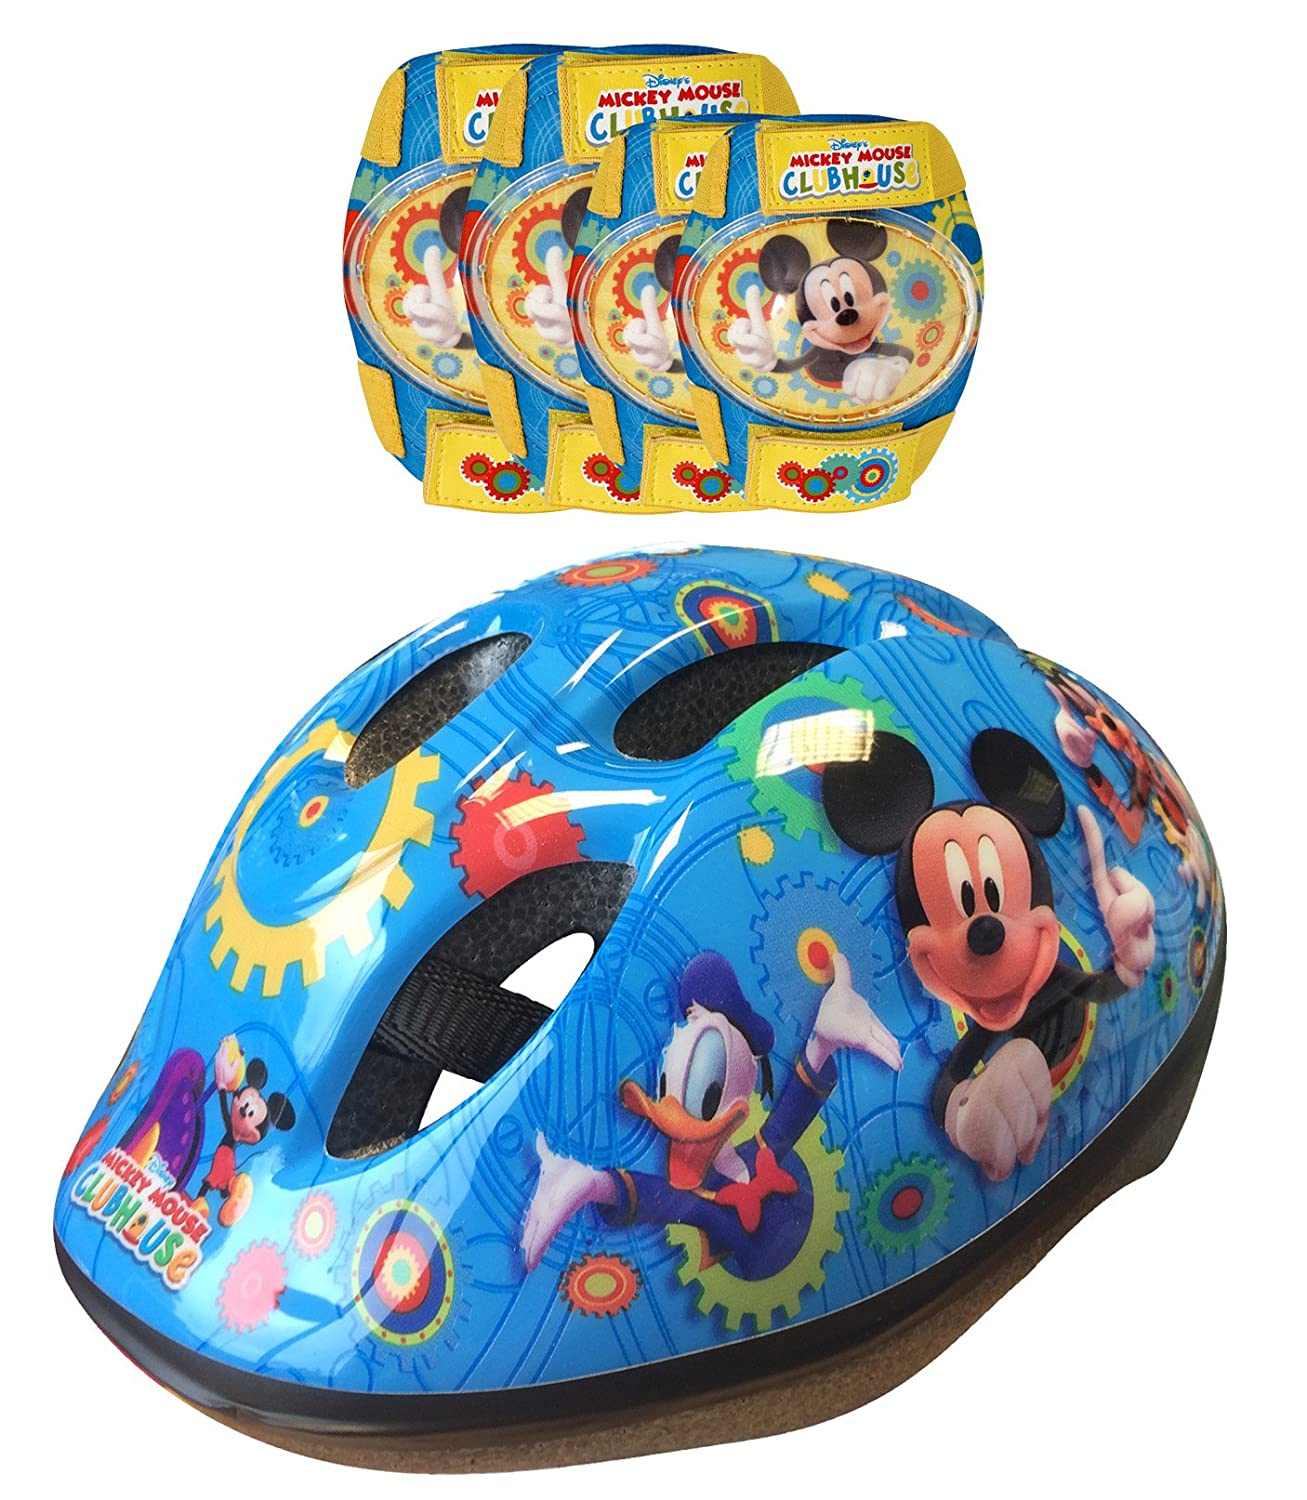 Stamp Disney Mickey Mouse Knee Pads Helmet and Elbow Pads